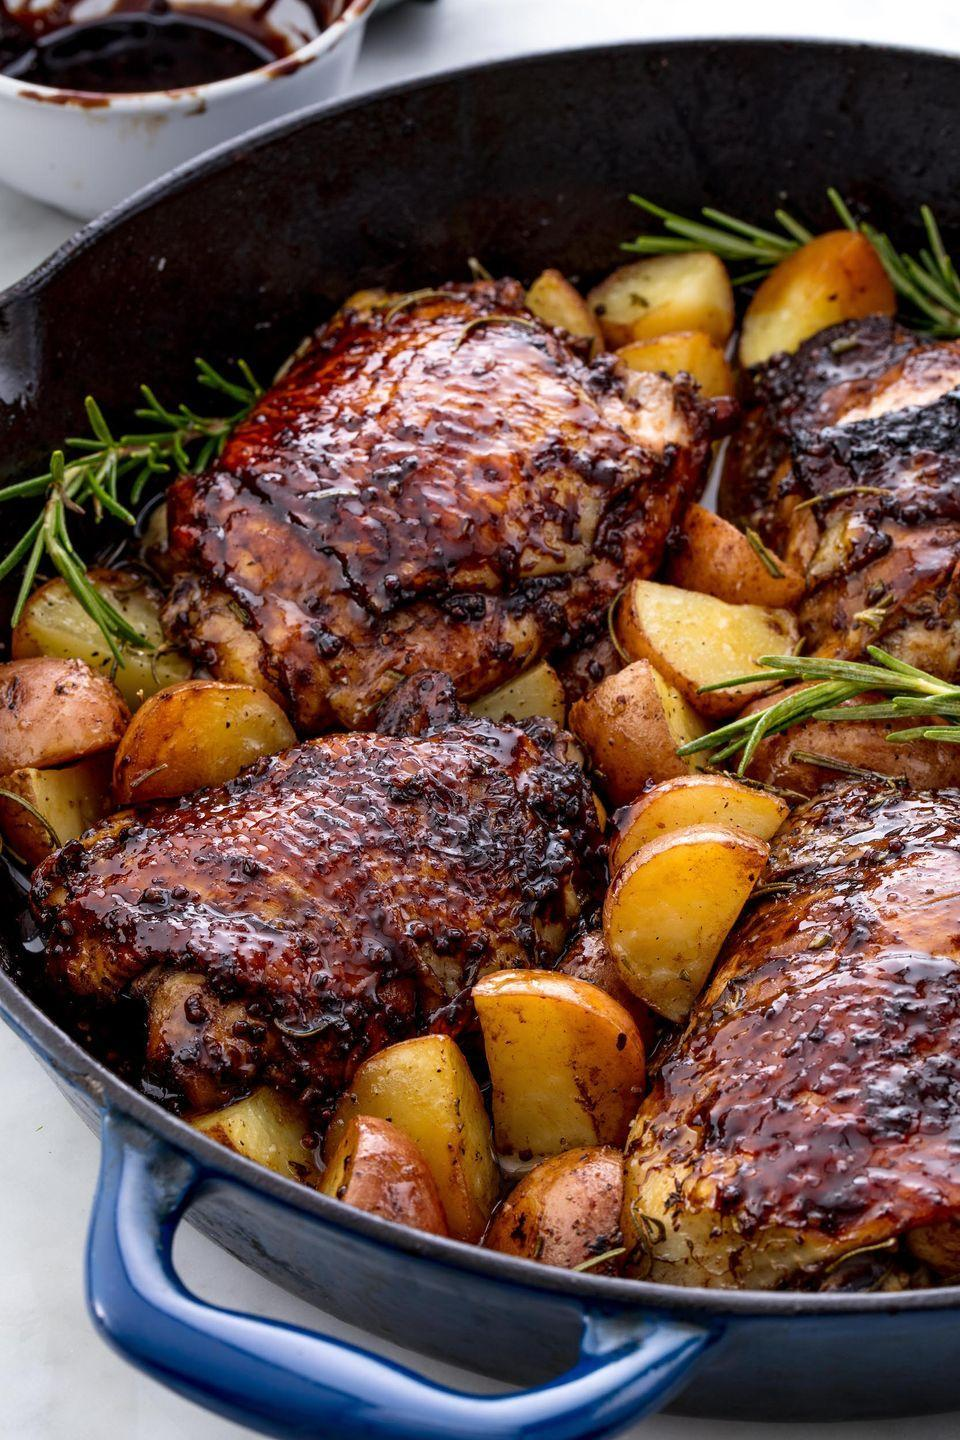 """<p>So simple but SO good.</p><p>Get the recipe from <a href=""""https://www.delish.com/cooking/recipe-ideas/recipes/a49138/balsamic-glazed-chicken/"""" rel=""""nofollow noopener"""" target=""""_blank"""" data-ylk=""""slk:Delish"""" class=""""link rapid-noclick-resp"""">Delish</a>. </p>"""